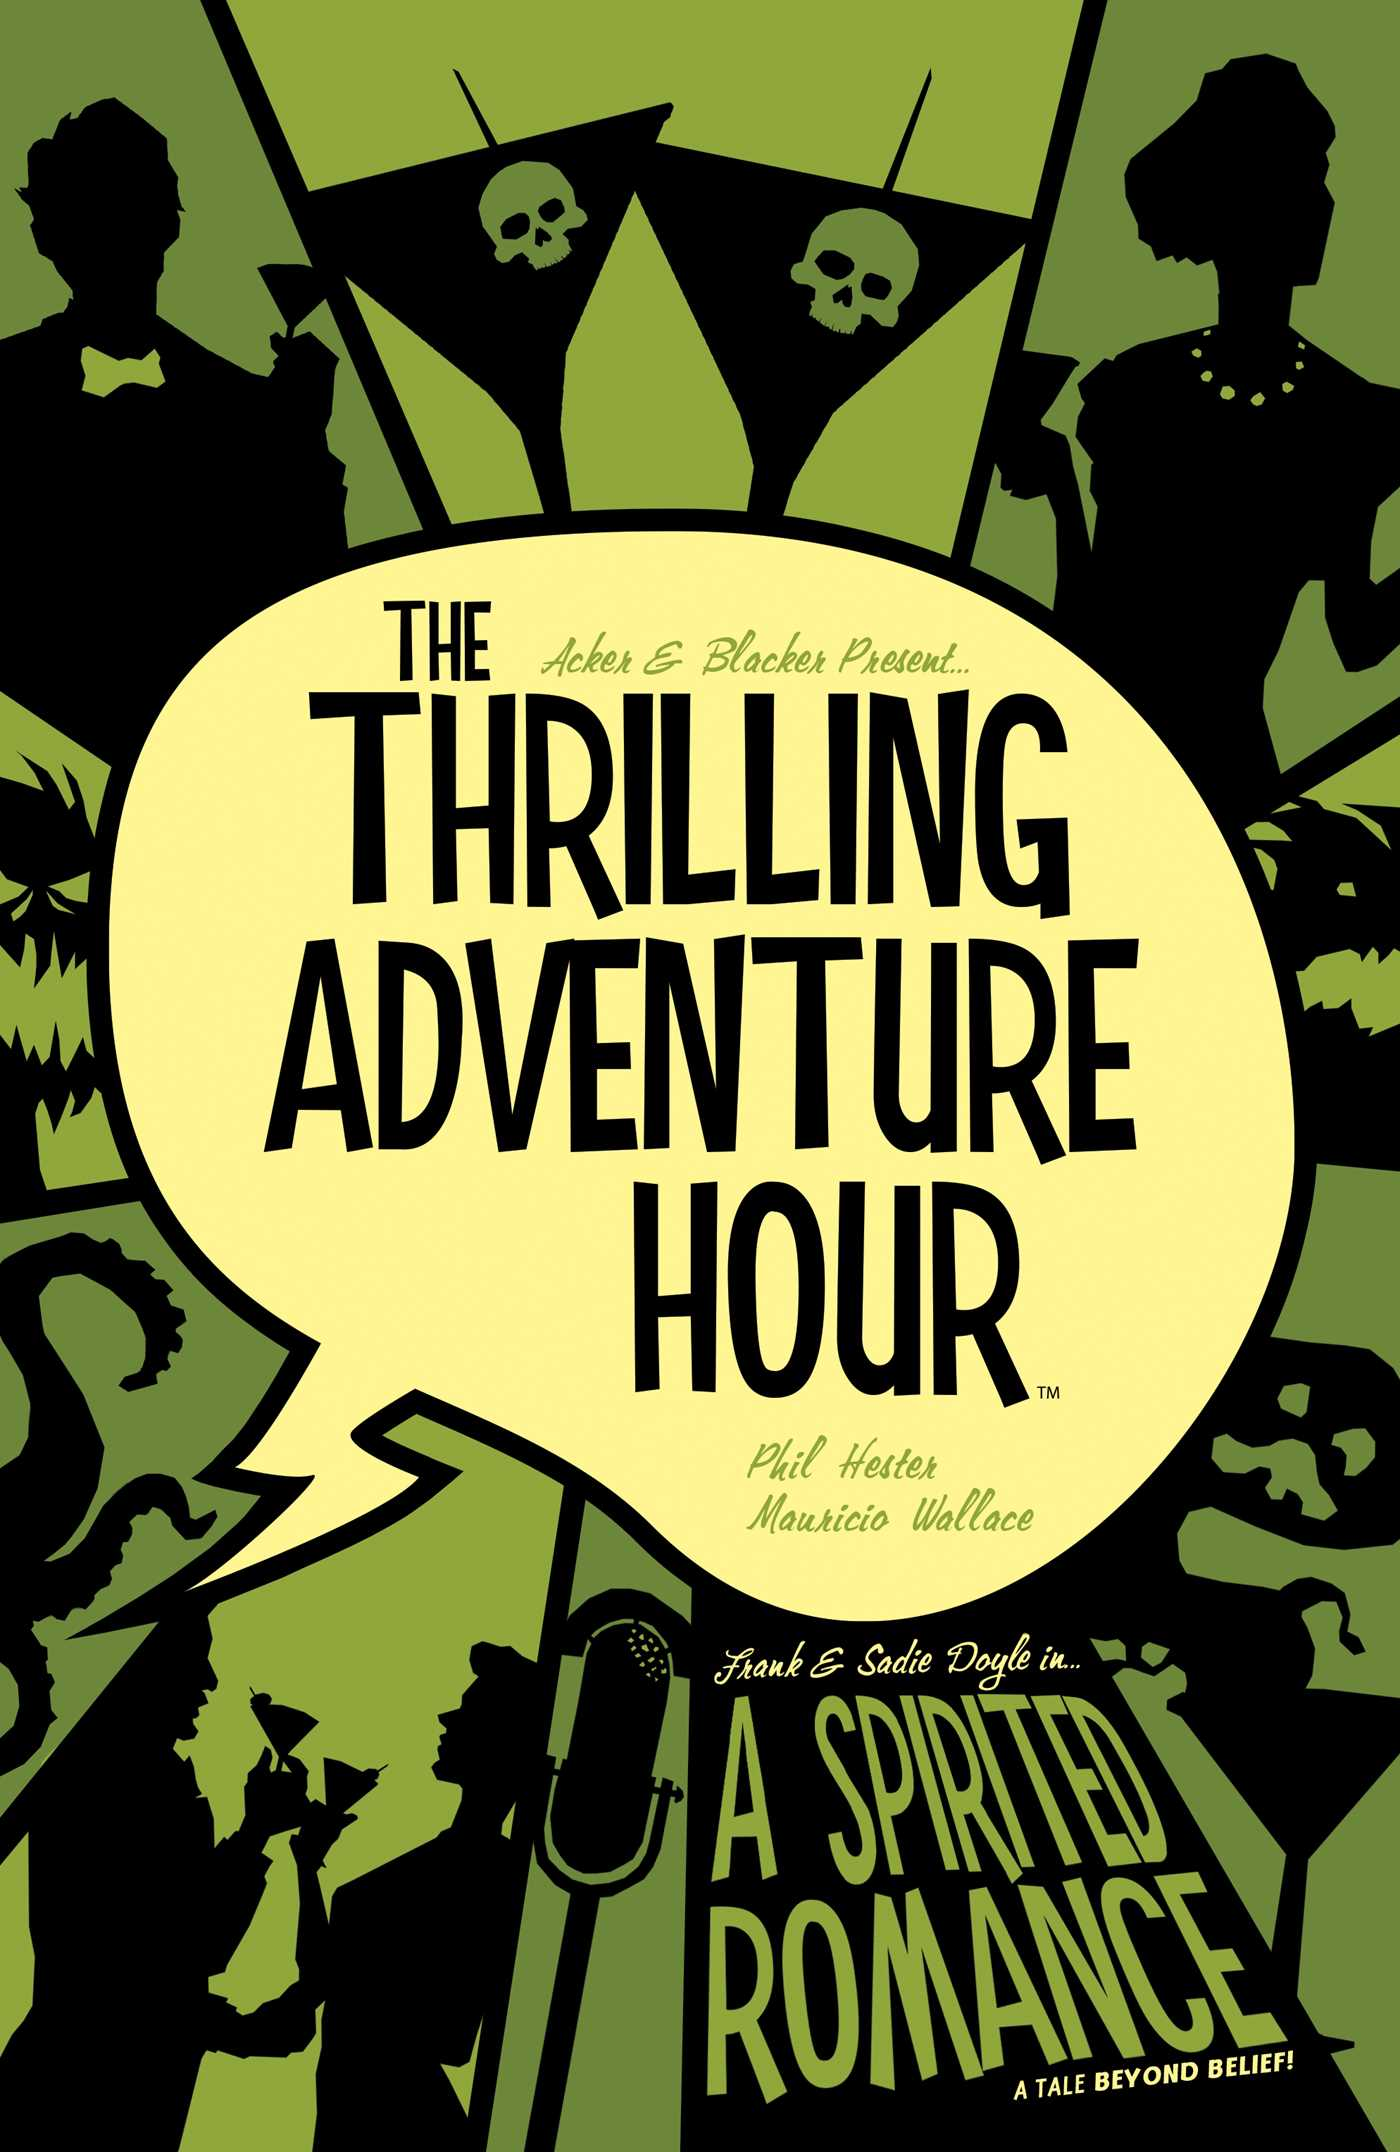 The thrilling adventure hour a spirited romance 9781684152315 hr